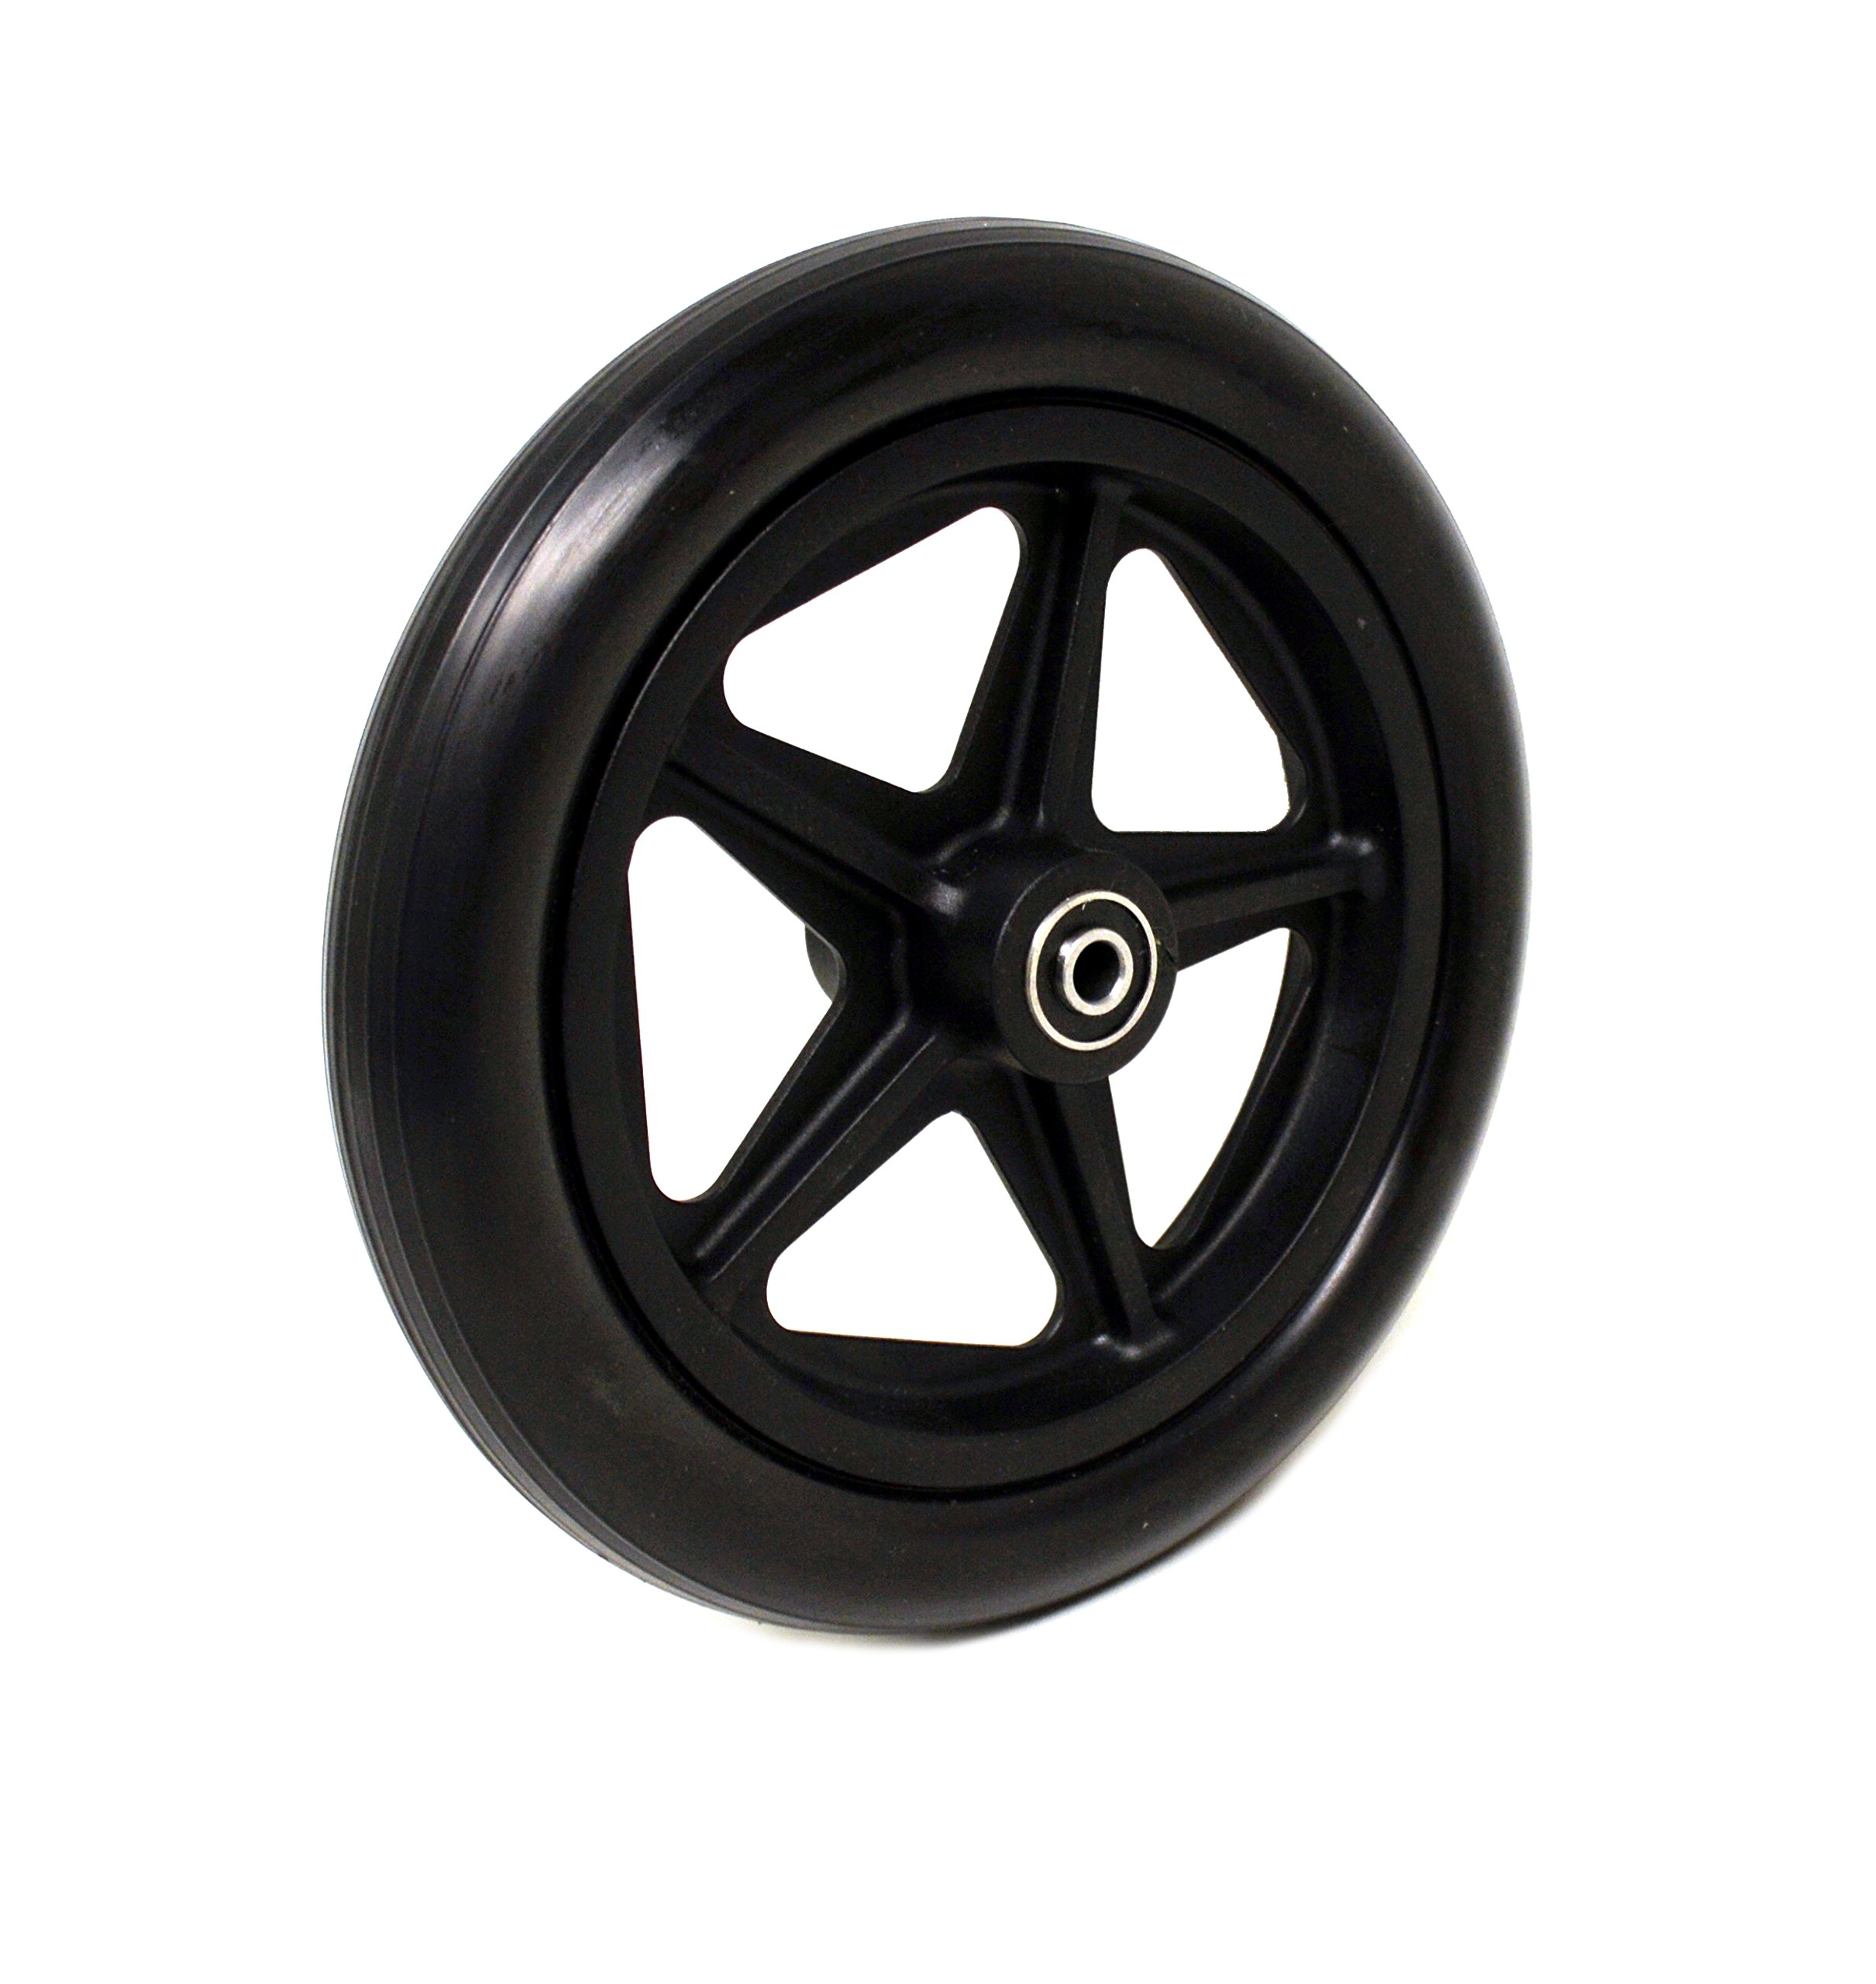 8'' x 1'' Front Wheelchair Wheel (Each), 1-13/16'' Narrow Hub Width, 5/16'' Bearing, Fits Some Drive, Medline, ALCO & Other Manual Wheelchairs (Please Measure Hub Width)